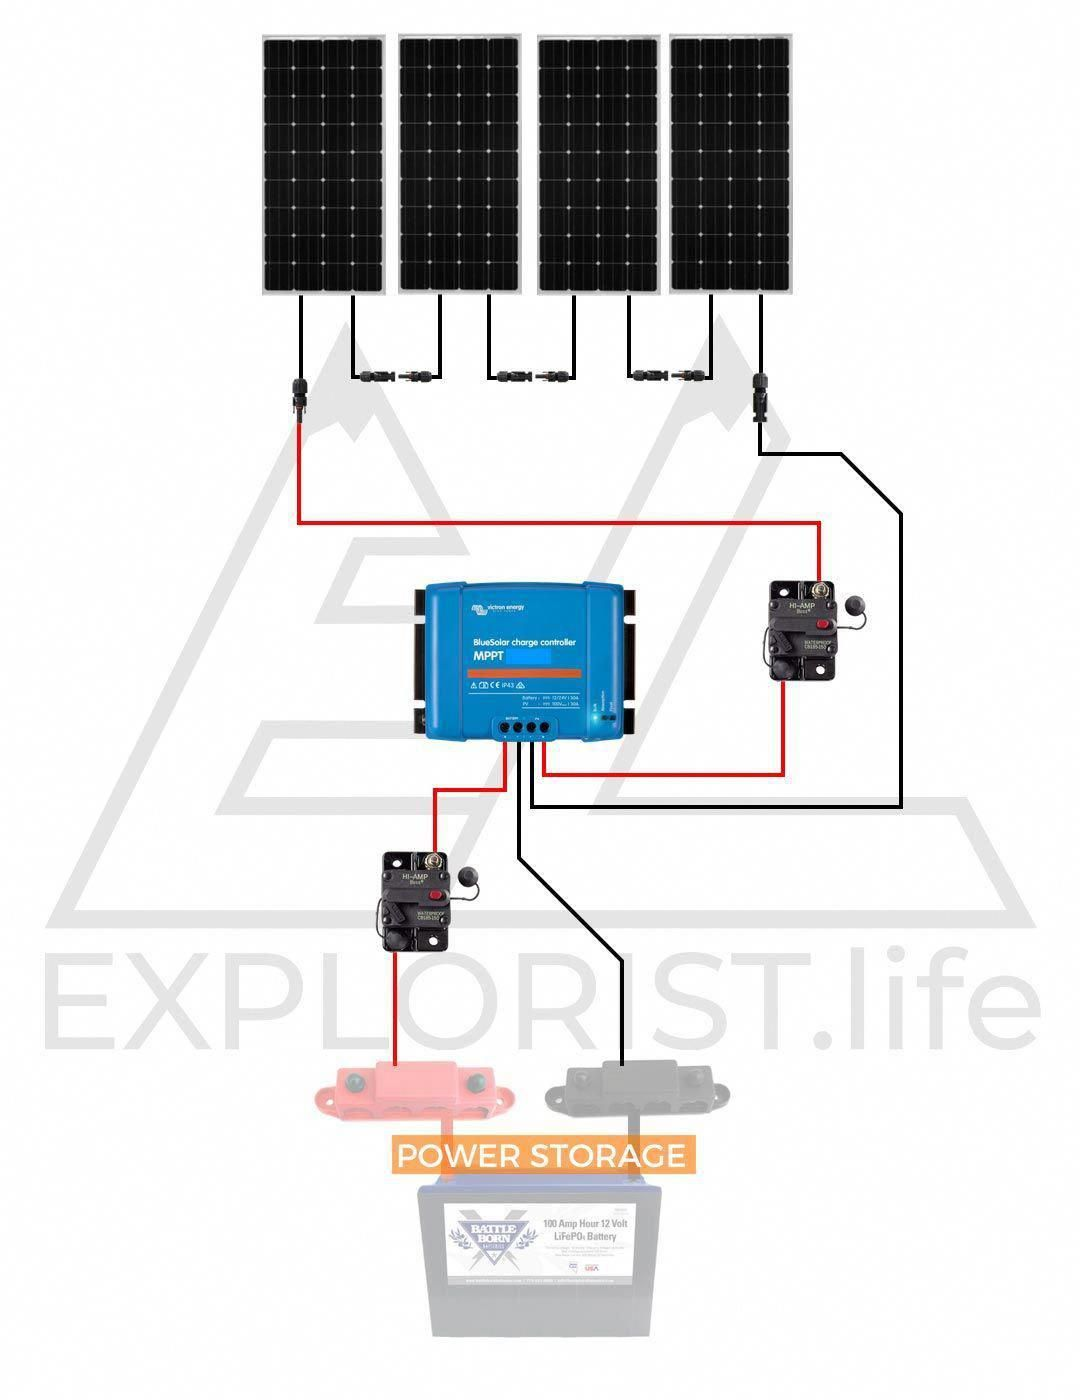 A Complete Guide To Installing Solar On A Campervan Explorist Life Solarpanels Solarenergy Solarpo In 2020 Solar Energy System Diy Solar Power System Solar Projects